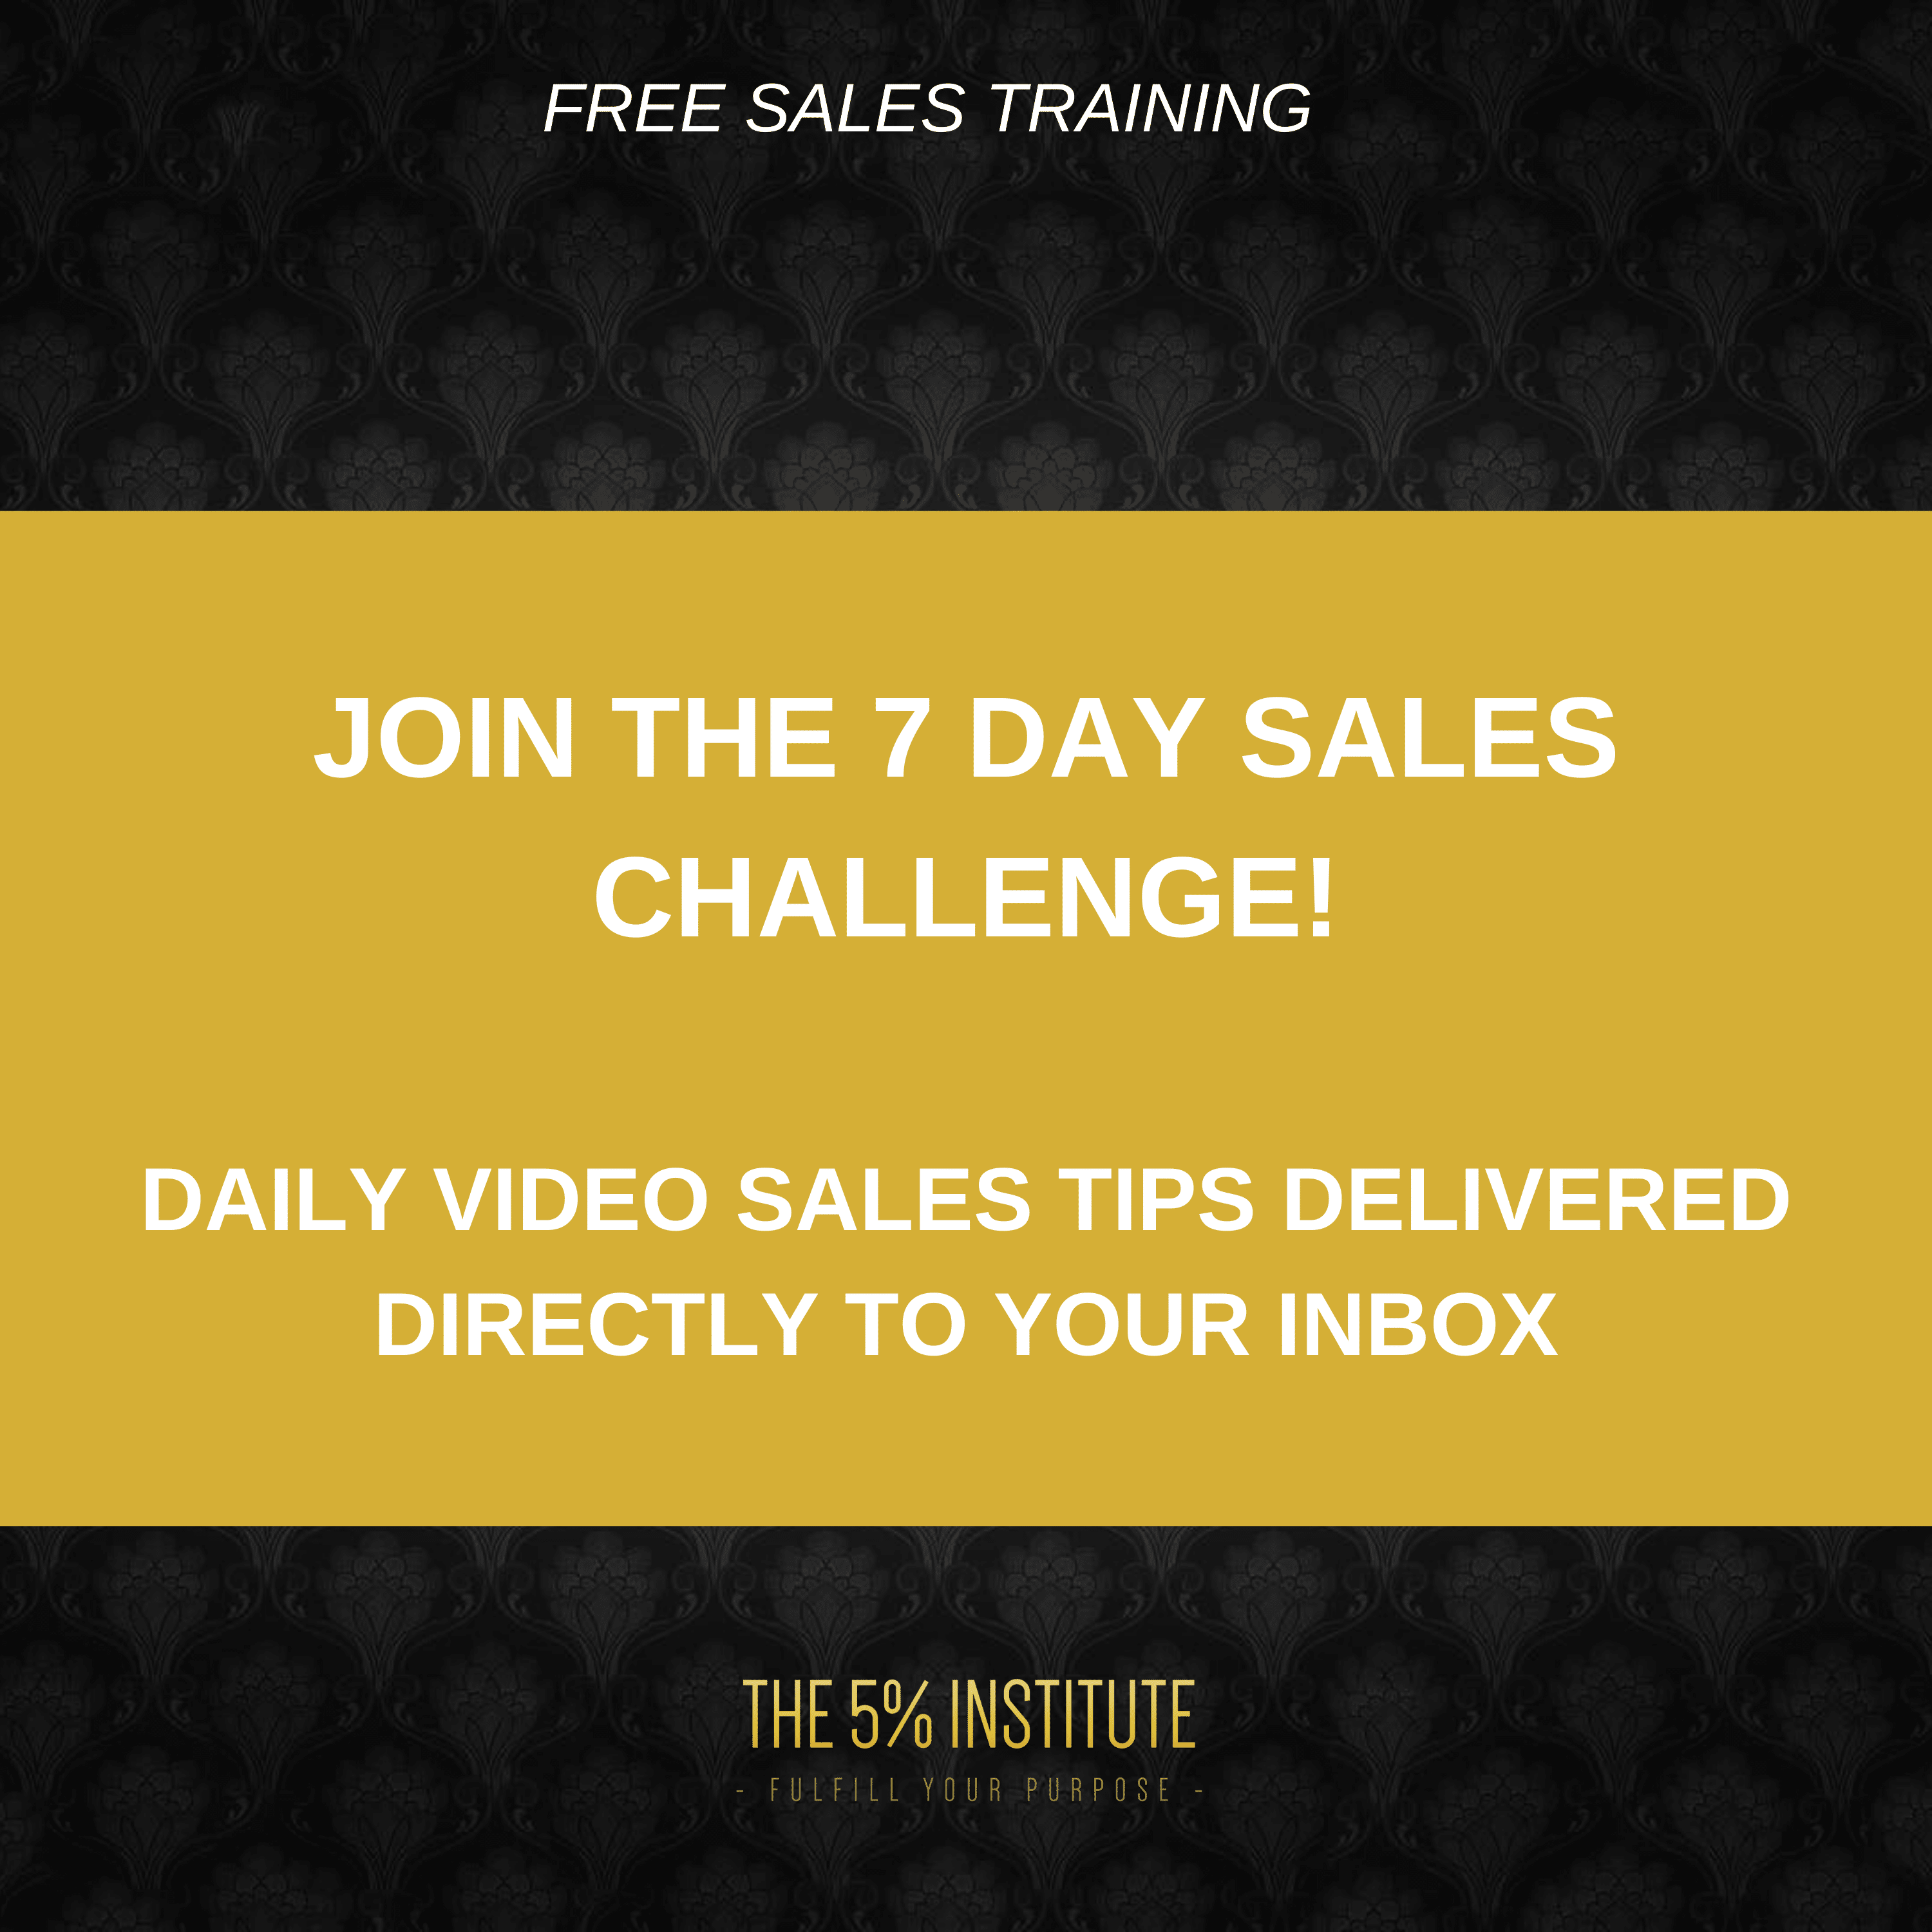 FREE SALES TRAINING